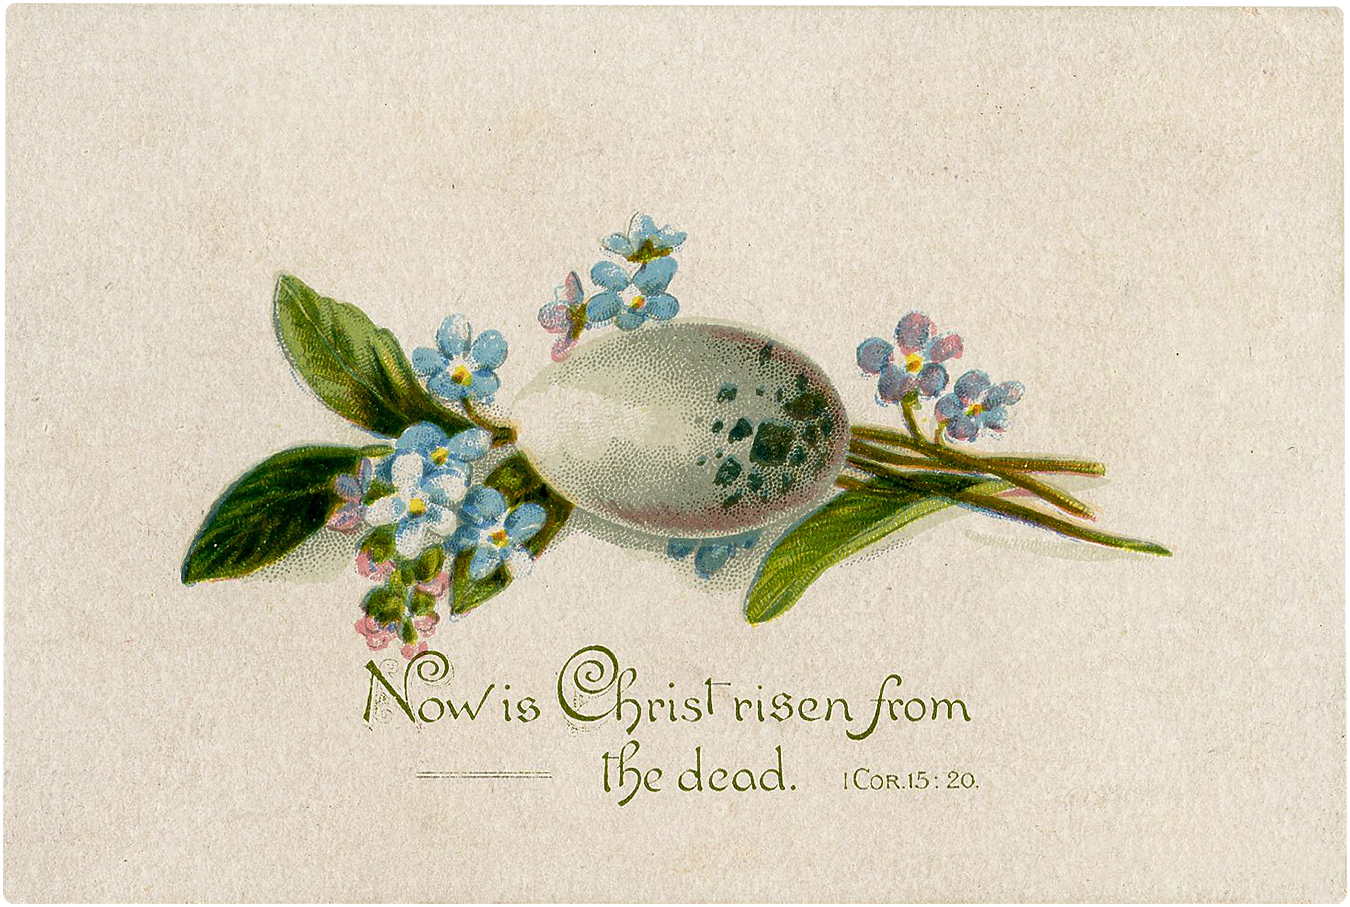 Vintage Lovely Speckled Bird Egg Bible Quote Image!